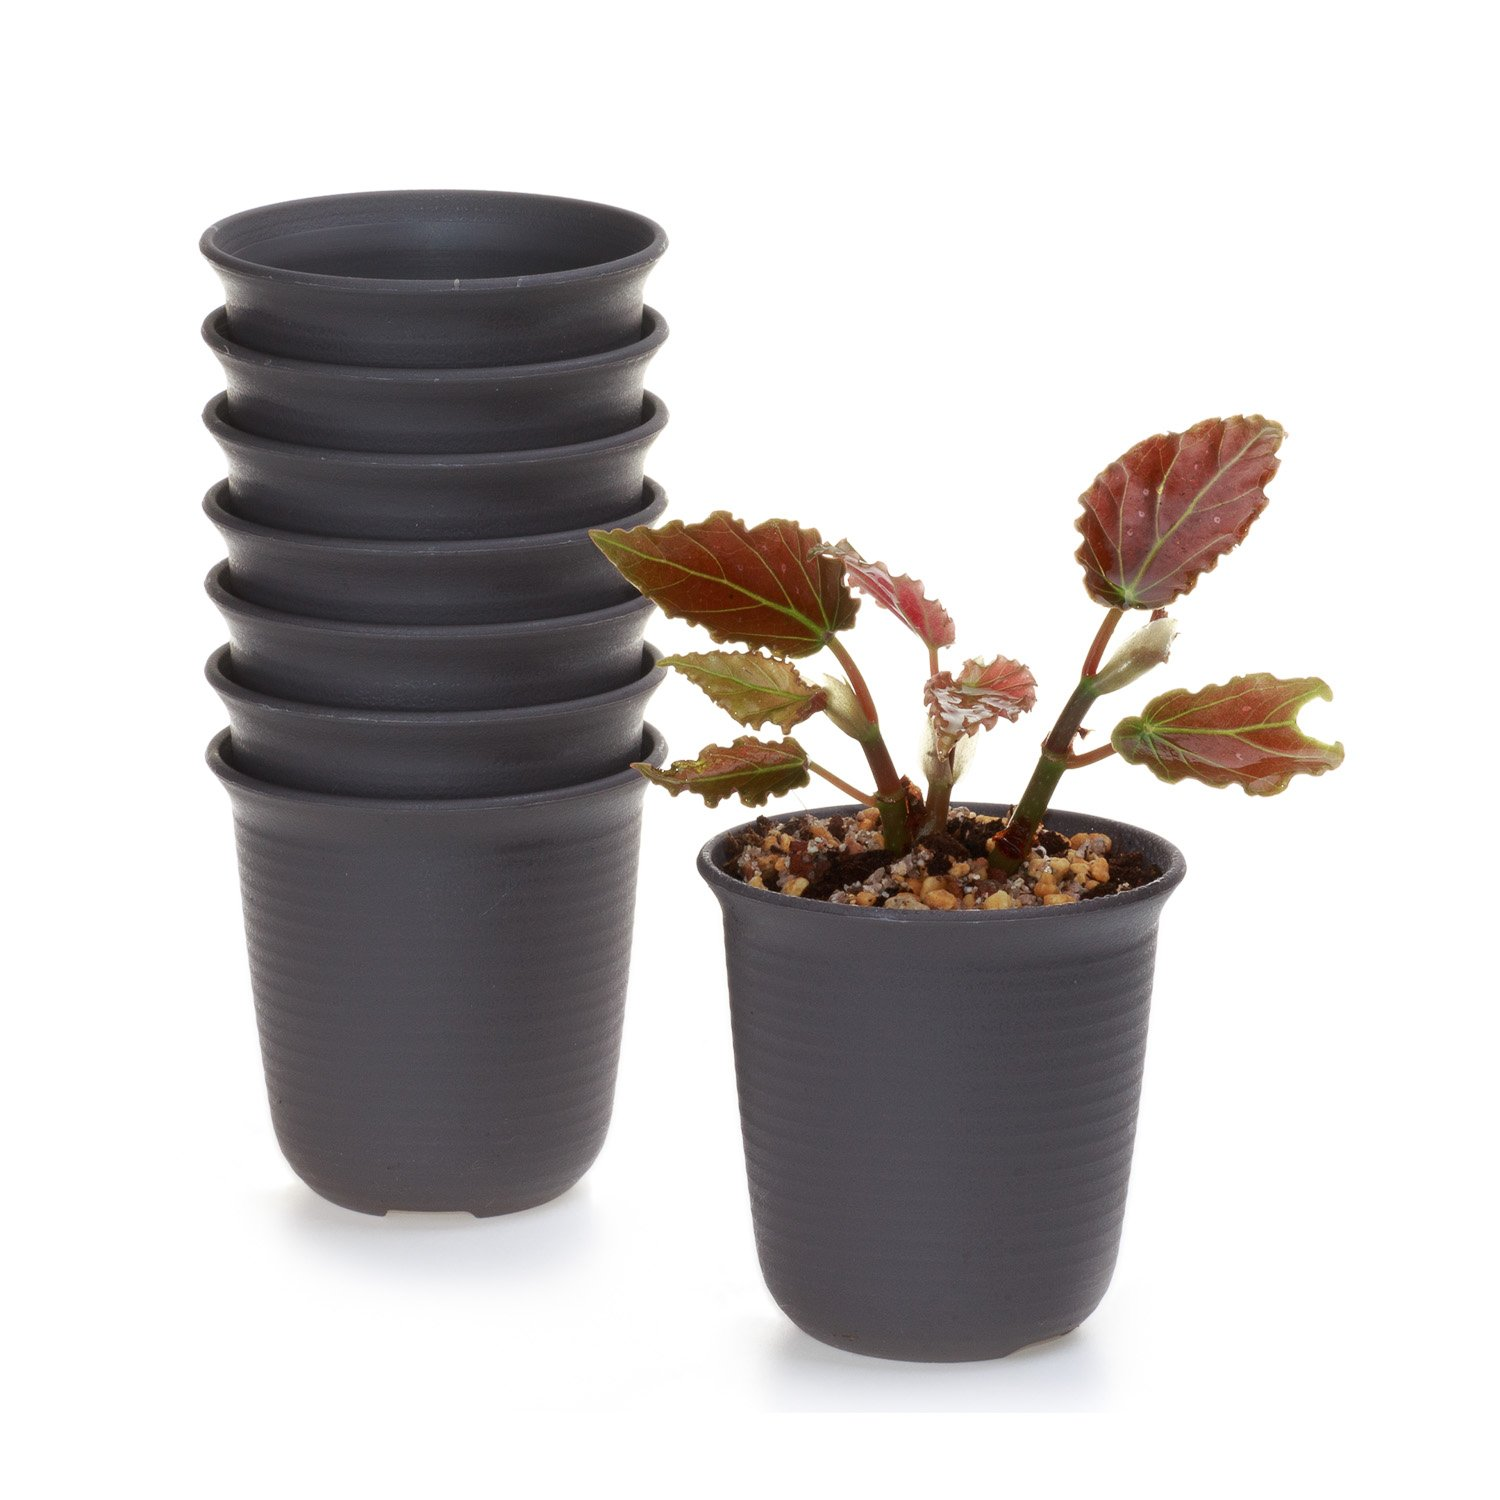 T4U 4.75 Inch Plastic Round Plant Pot Cactus Flower Pot Container Brown Set of 8,Seeding Nursery Planter Pot with Drainage for Flowers Herbs African Violets Succulents Orchid Cactus Indoor Outdoor